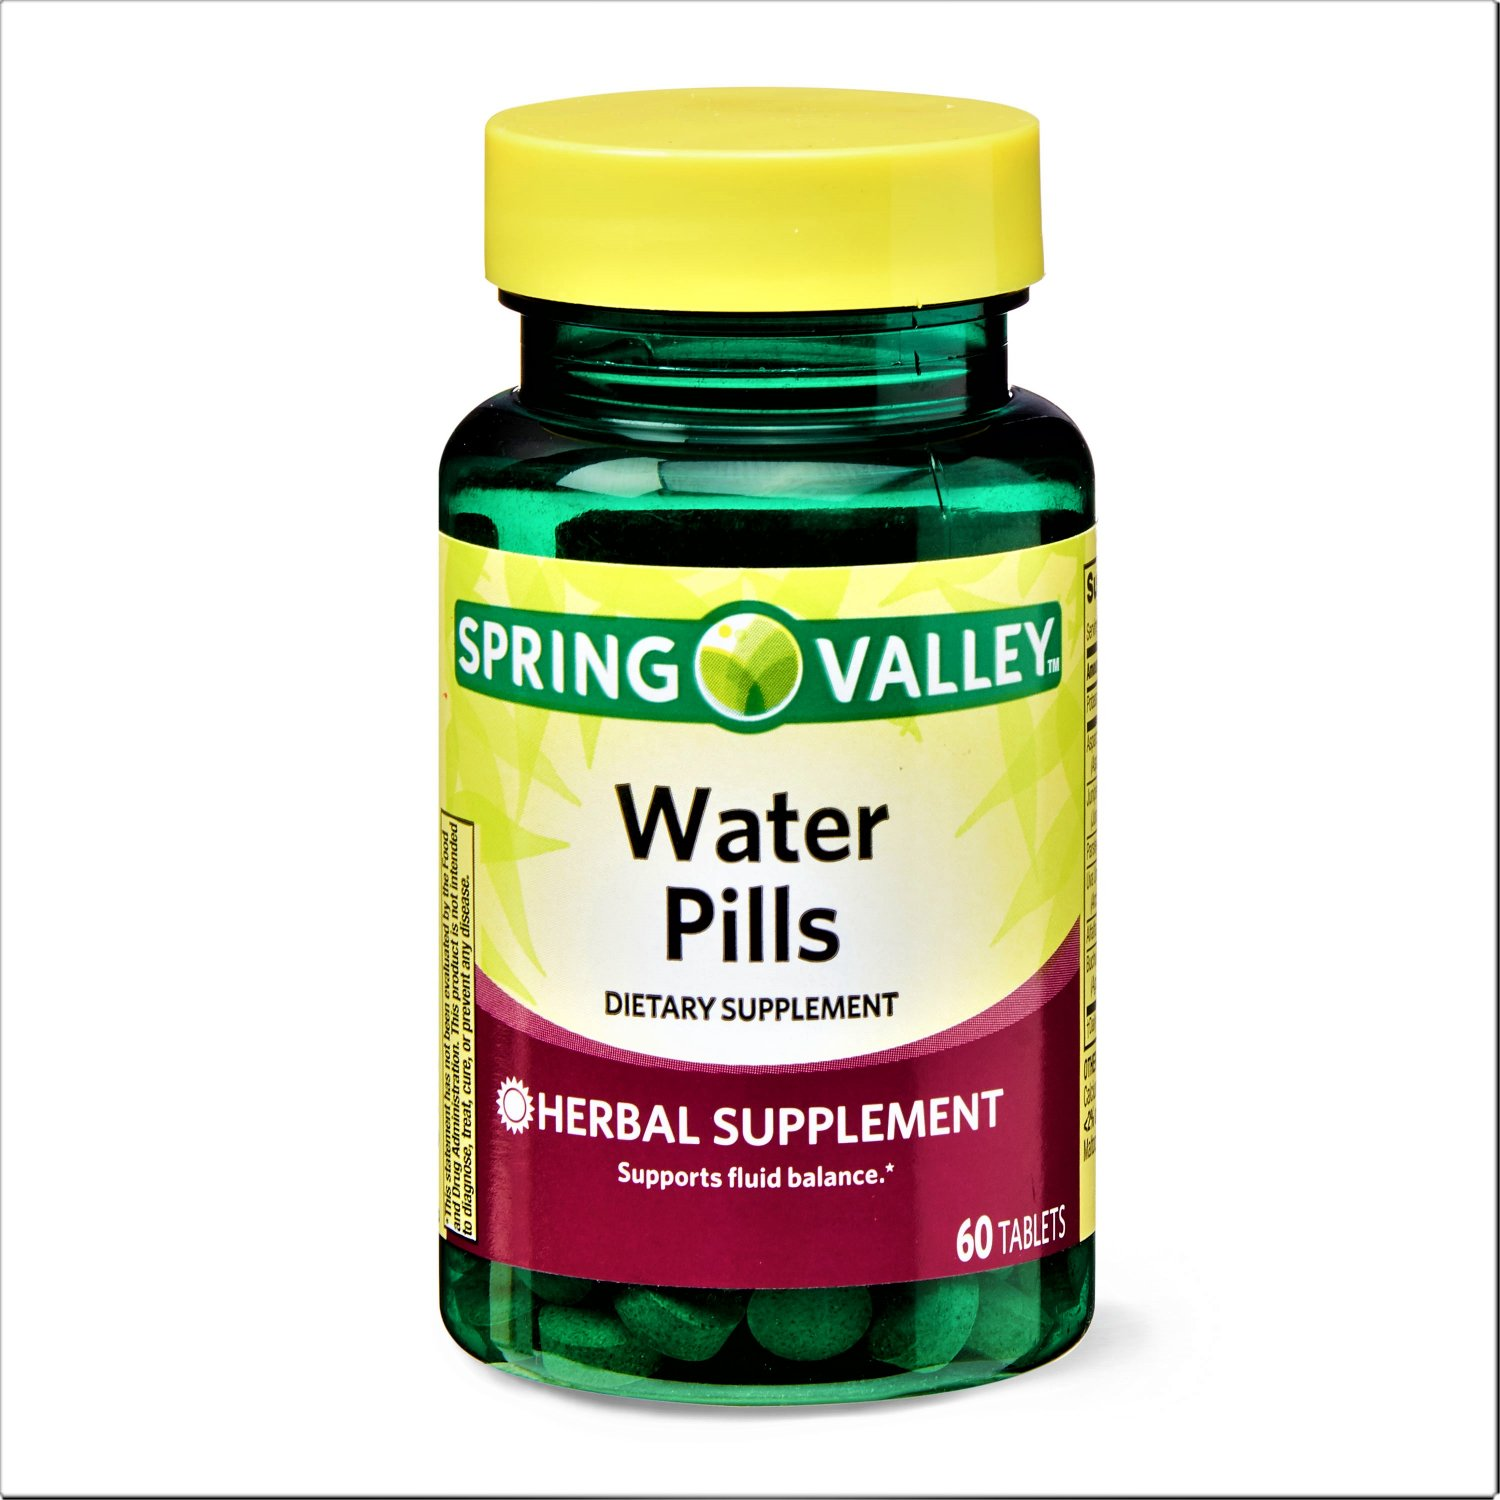 Spring Valley Water Pills Fluid Balance Support 60 Tablets